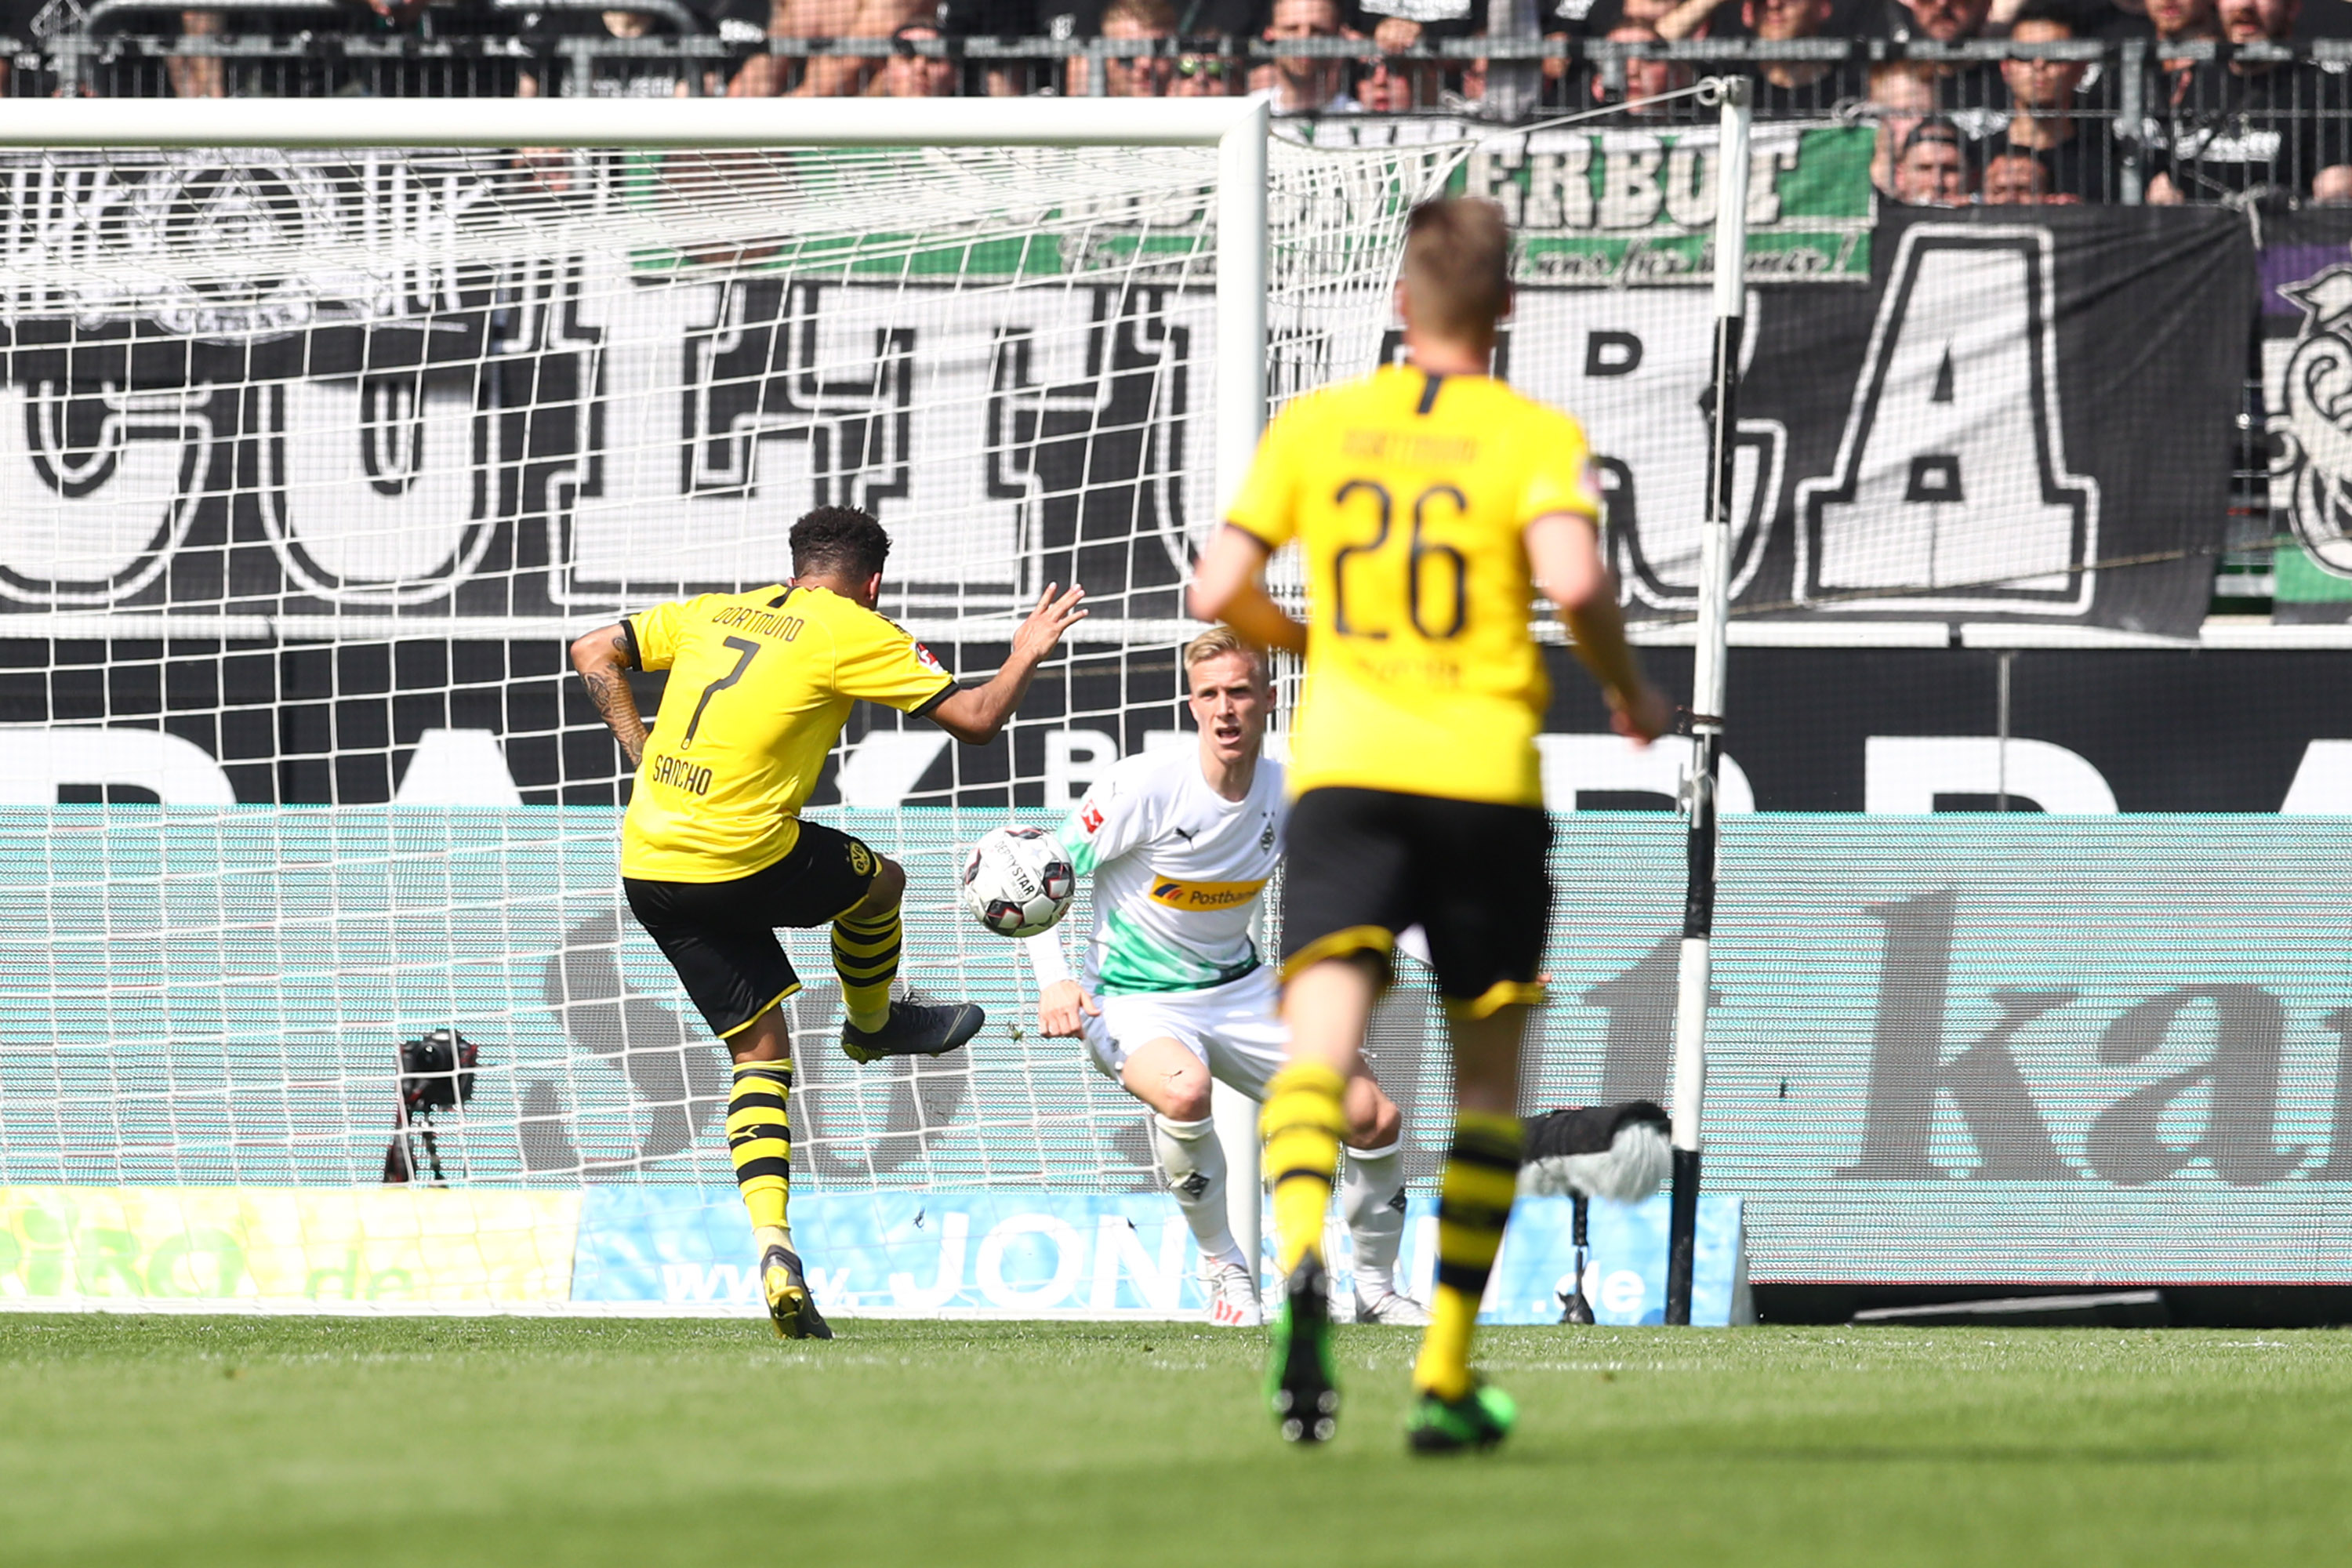 Gladbach v Borussia Dortmund -MOENCHENGLADBACH, GERMANY - MAY 18: Jadon Sancho of Borussia Dortmund scores his team's first goal during the Bundesliga match between Borussia Moenchengladbach and Borussia Dortmund at Borussia-Park on May 18, 2019 in Moenchengladbach, Germany. (Photo by Lars Baron/Bongarts/Getty Images)